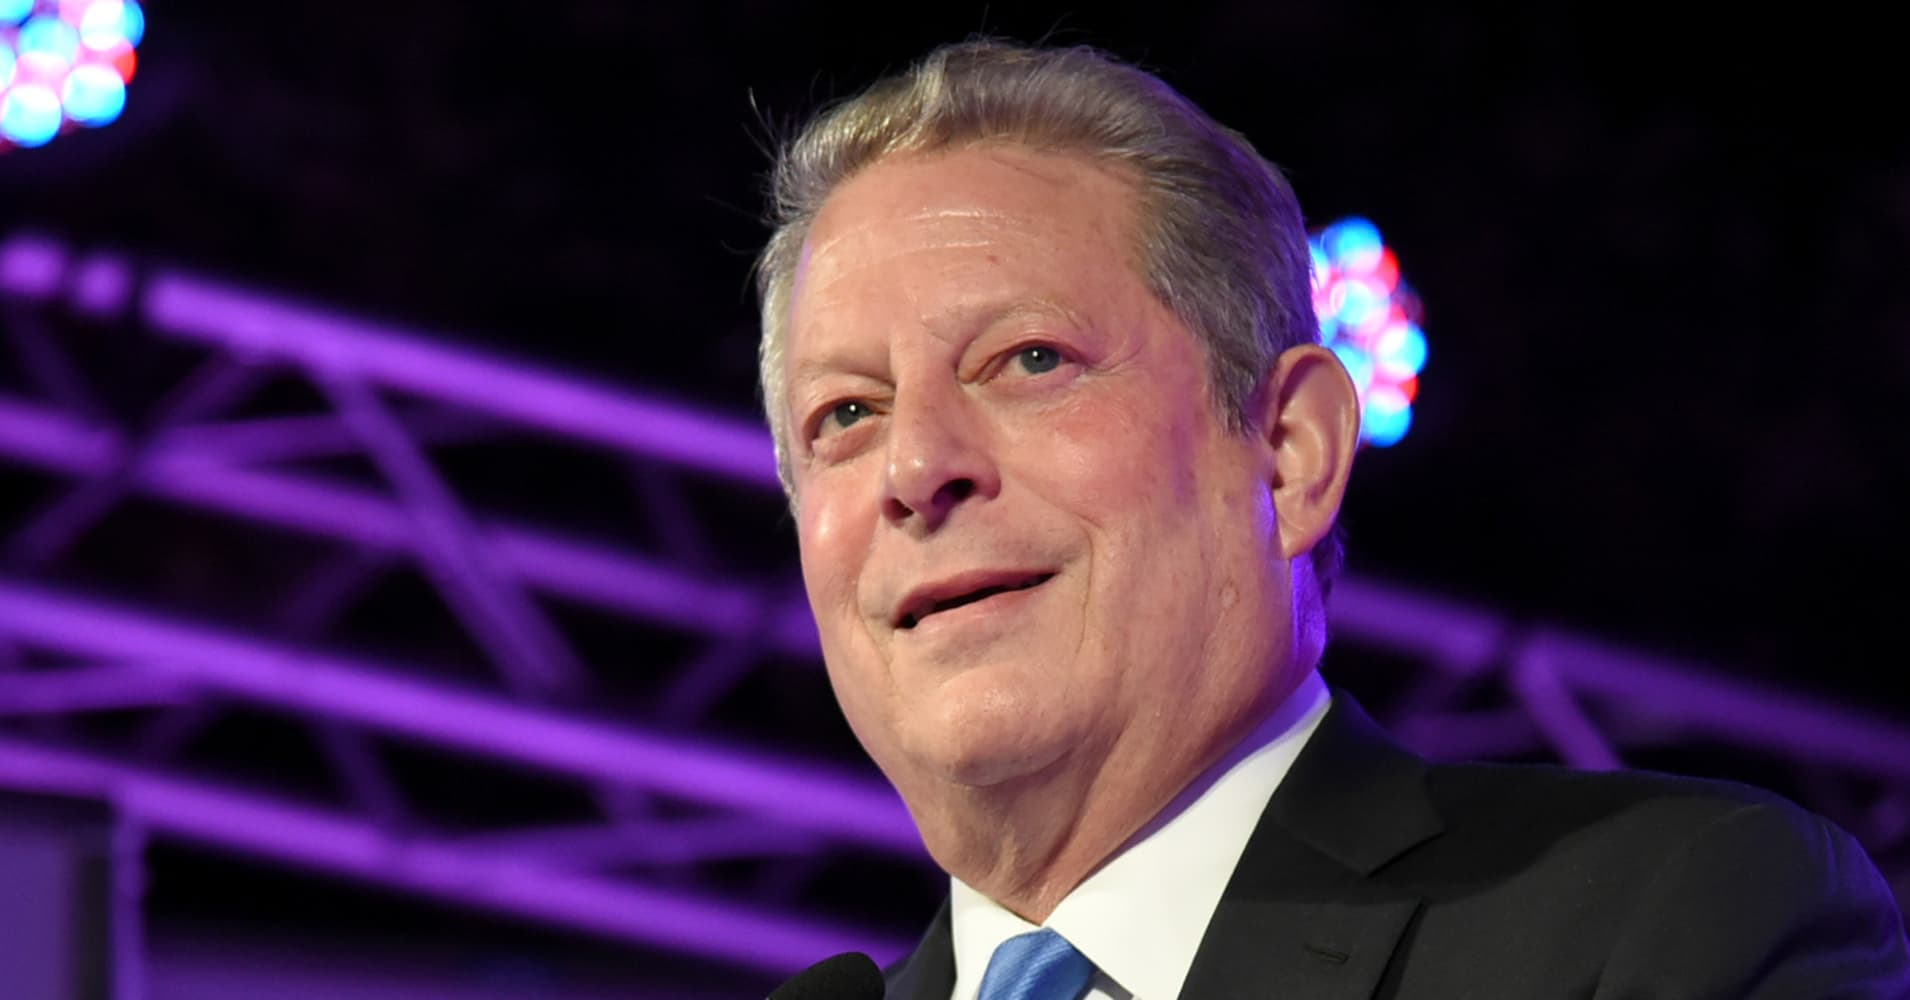 Al Gore has sold more than $37 million worth of Apple stock in February